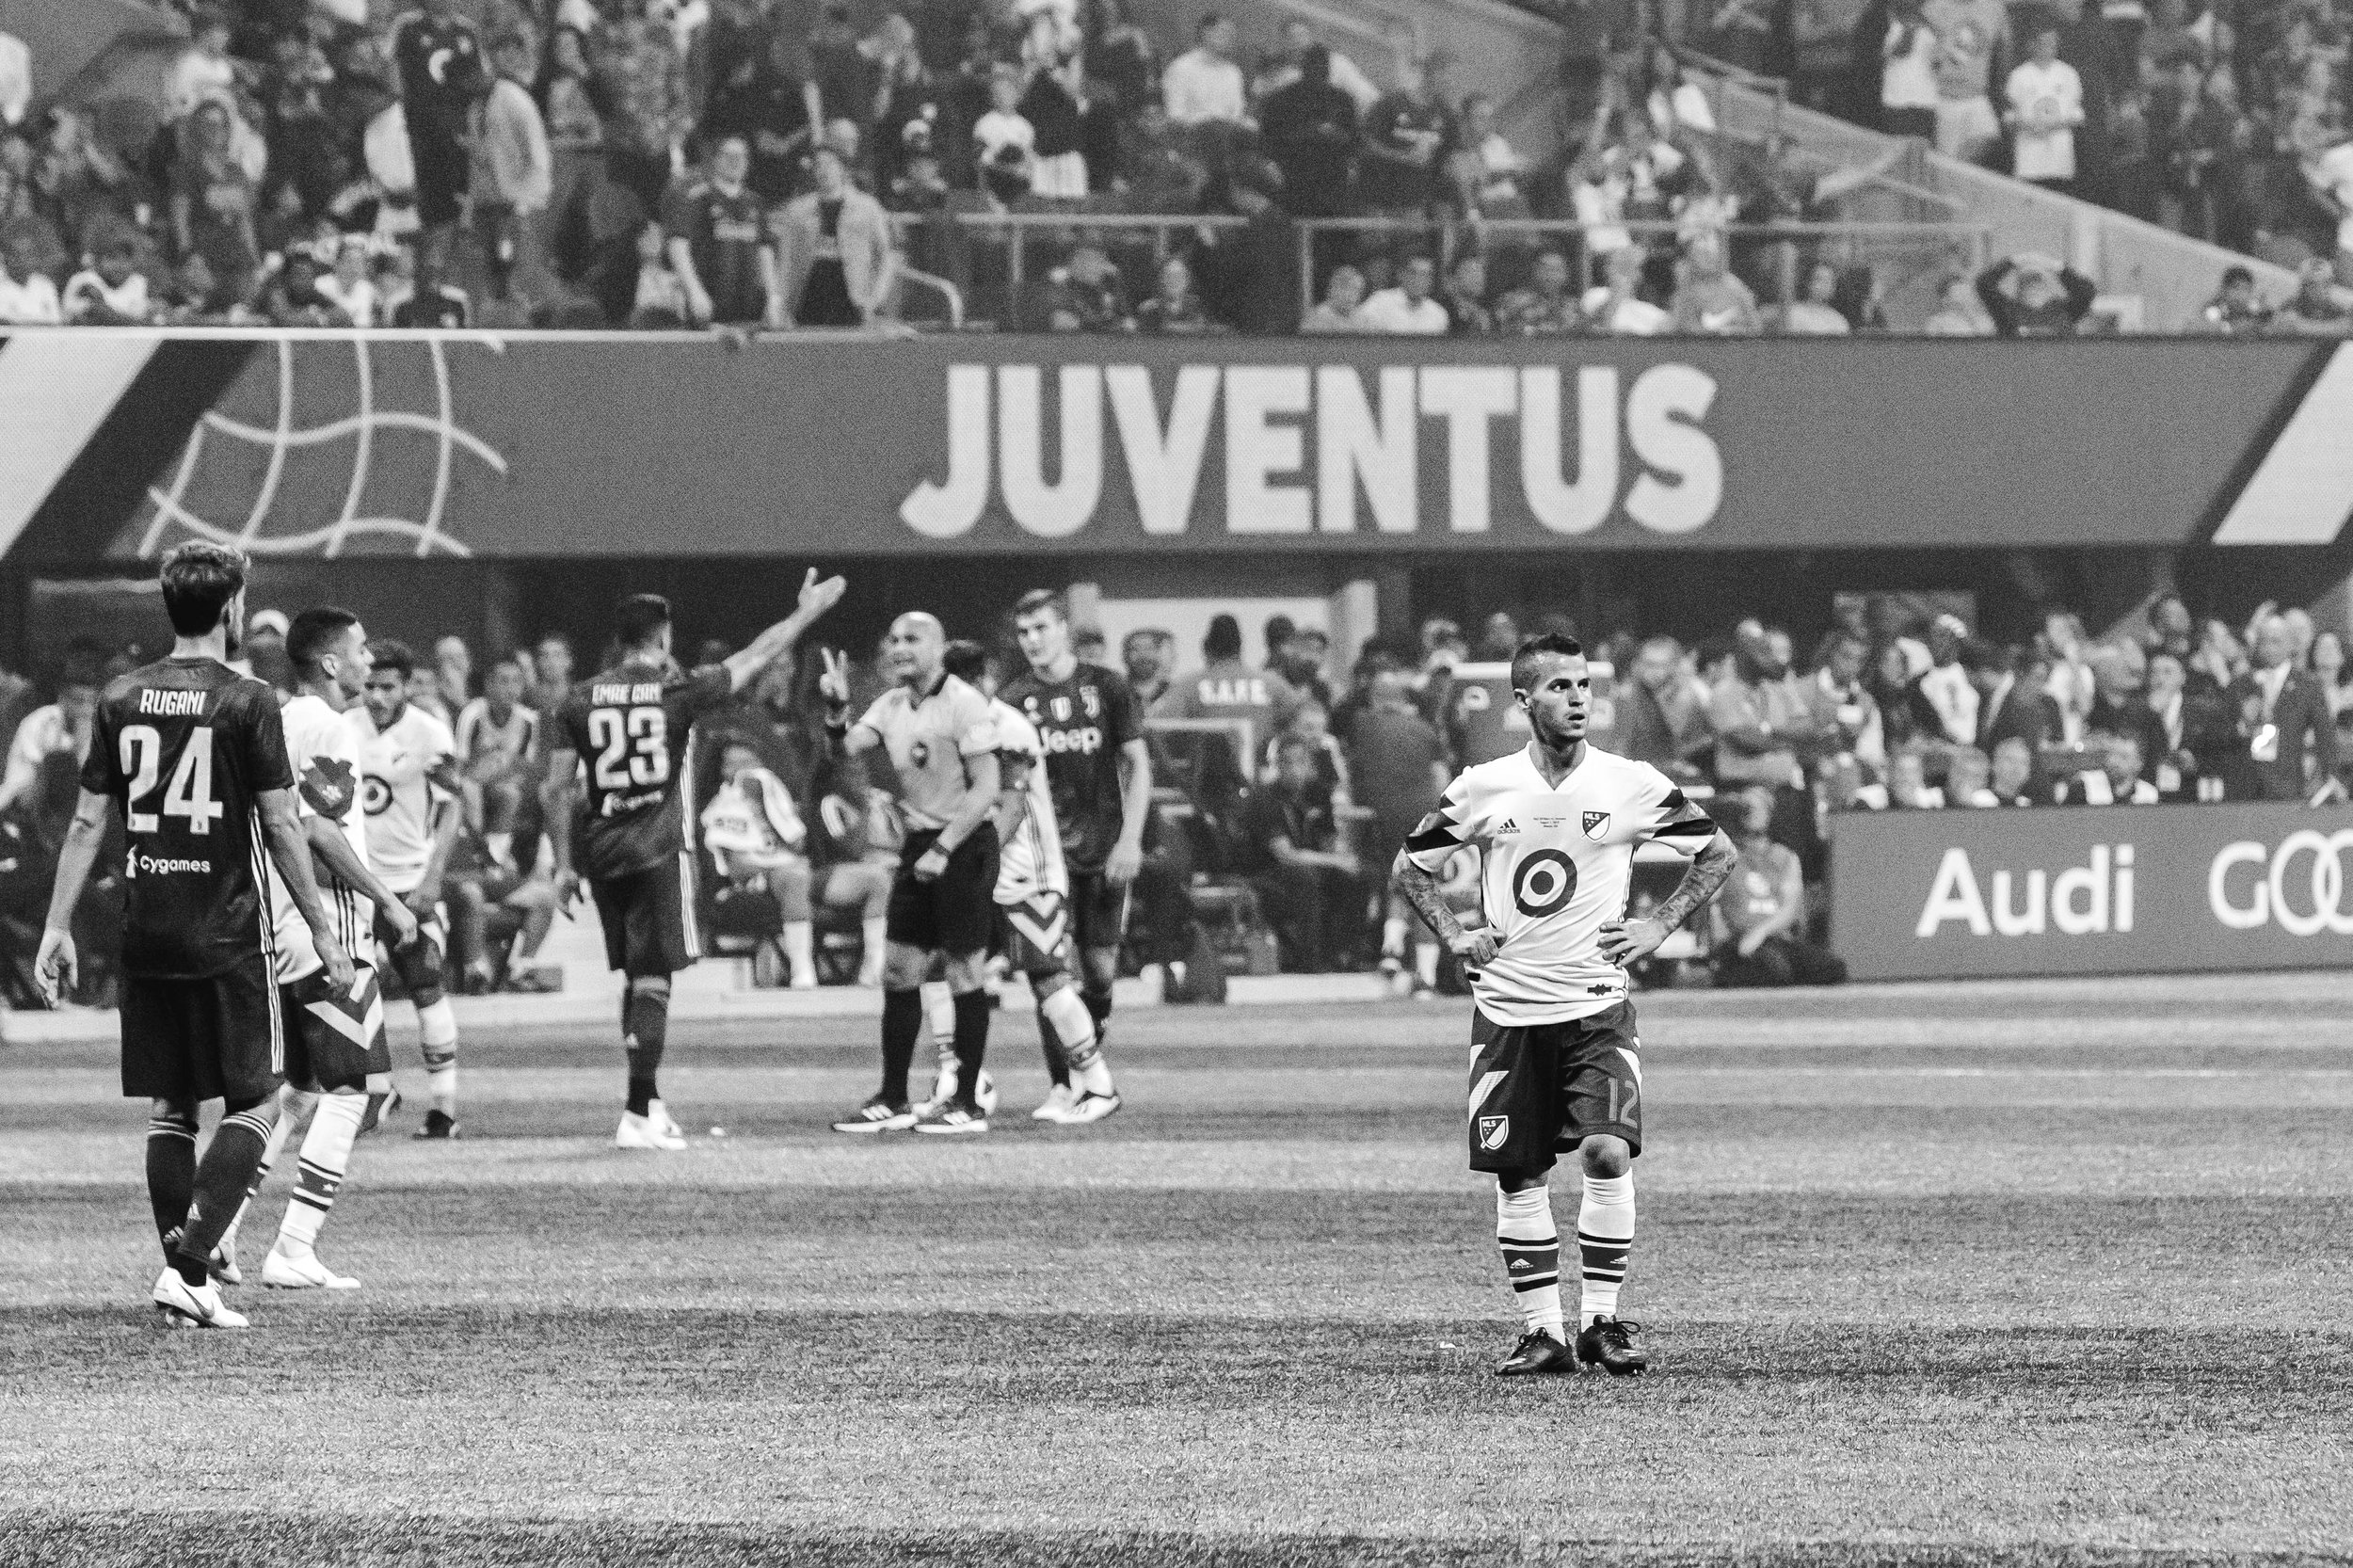 MLS ALL STAR JUVENTUS.jpg